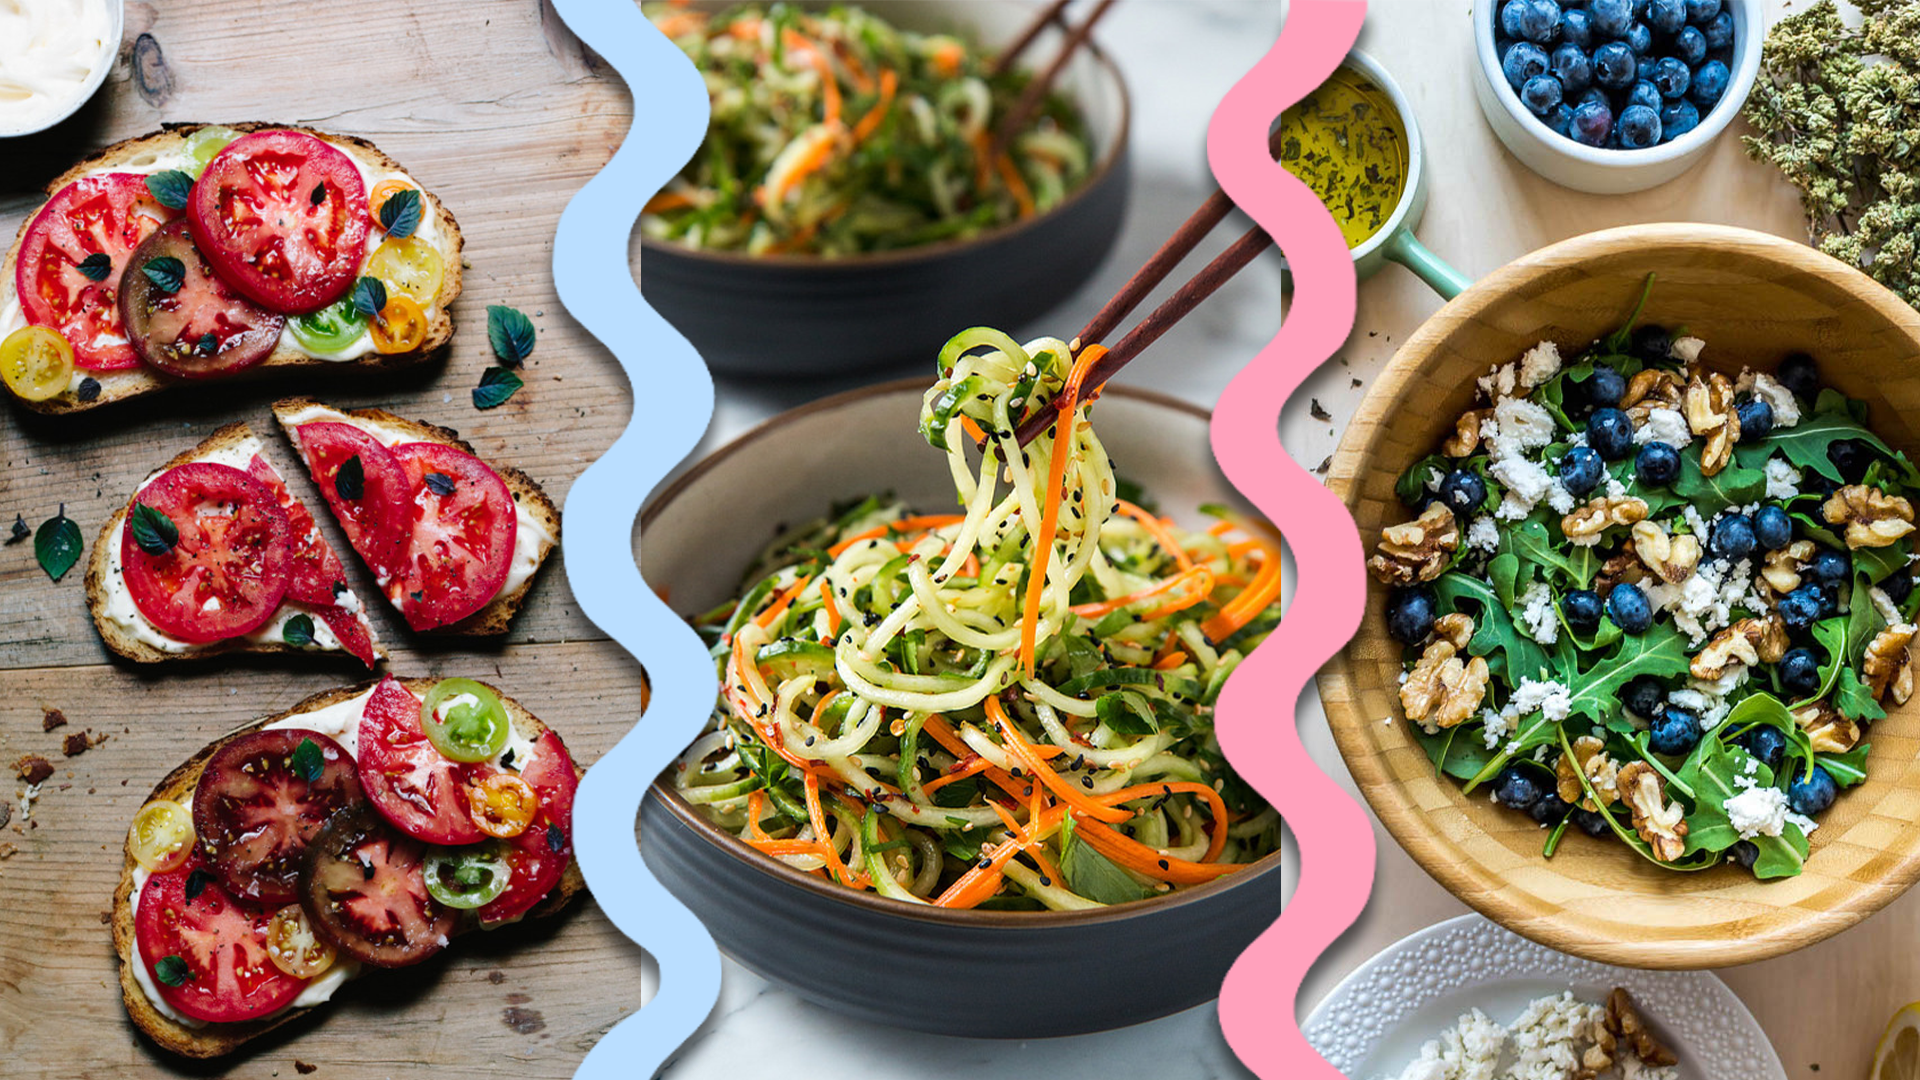 15 Light Summer Meals To Make When It's Too Damn Hot To Really Cook